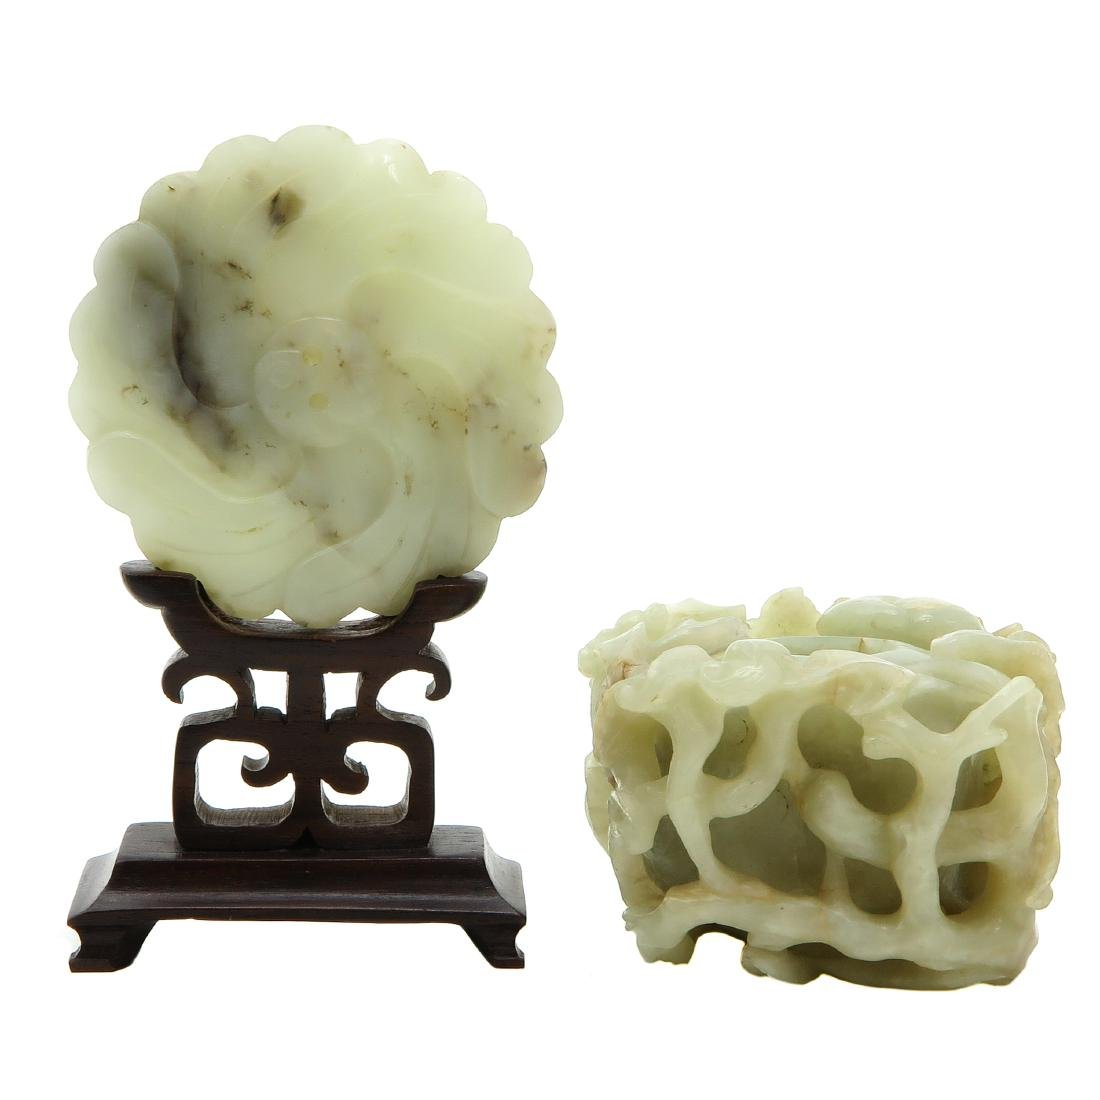 Lot of 2 Carved Jade Sculptures - 2